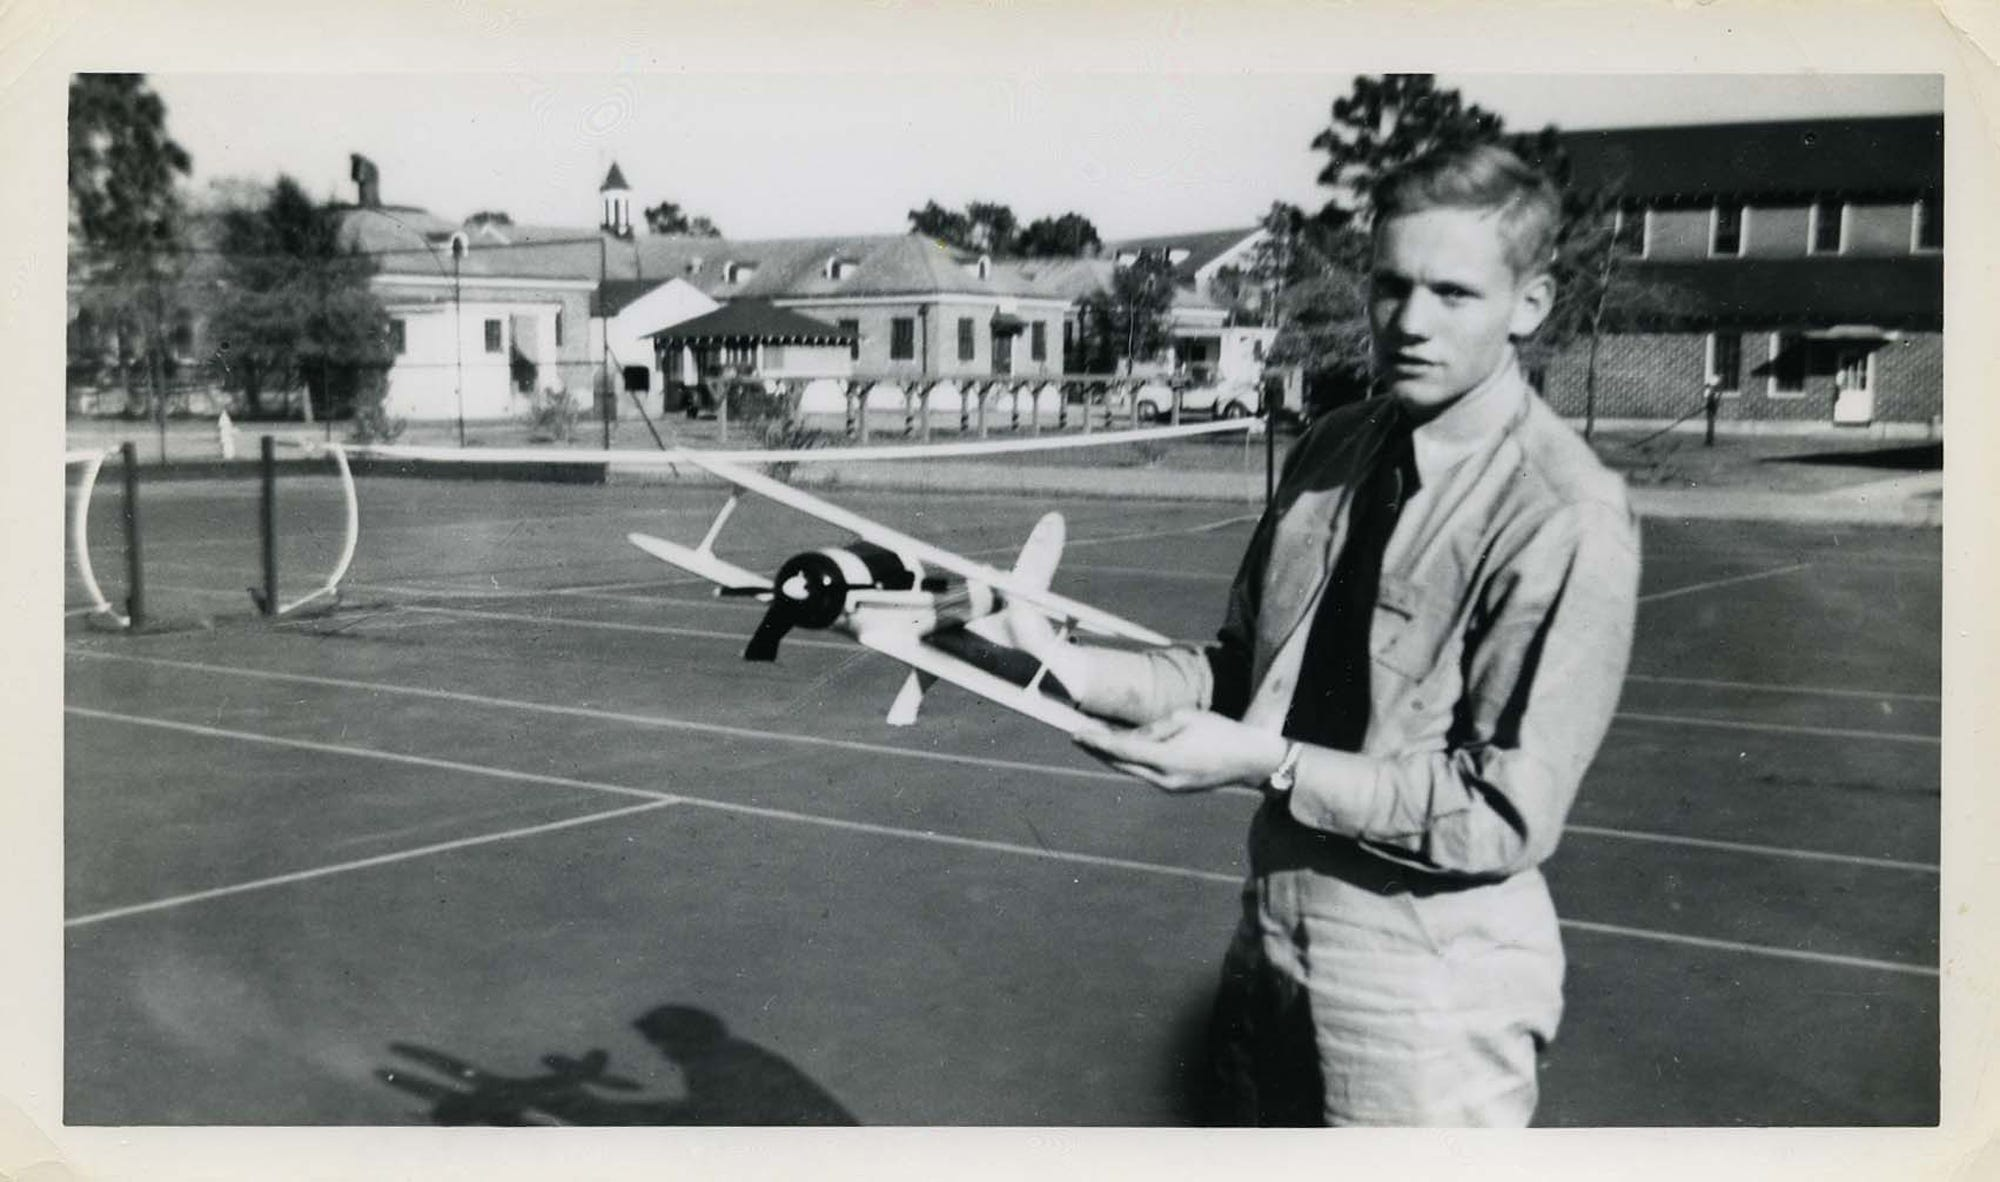 Armstrong Papers/Purdue Special CollectionsNeil Armstrong?s fascination with flight dated to his school days before he arrived at Purdue.